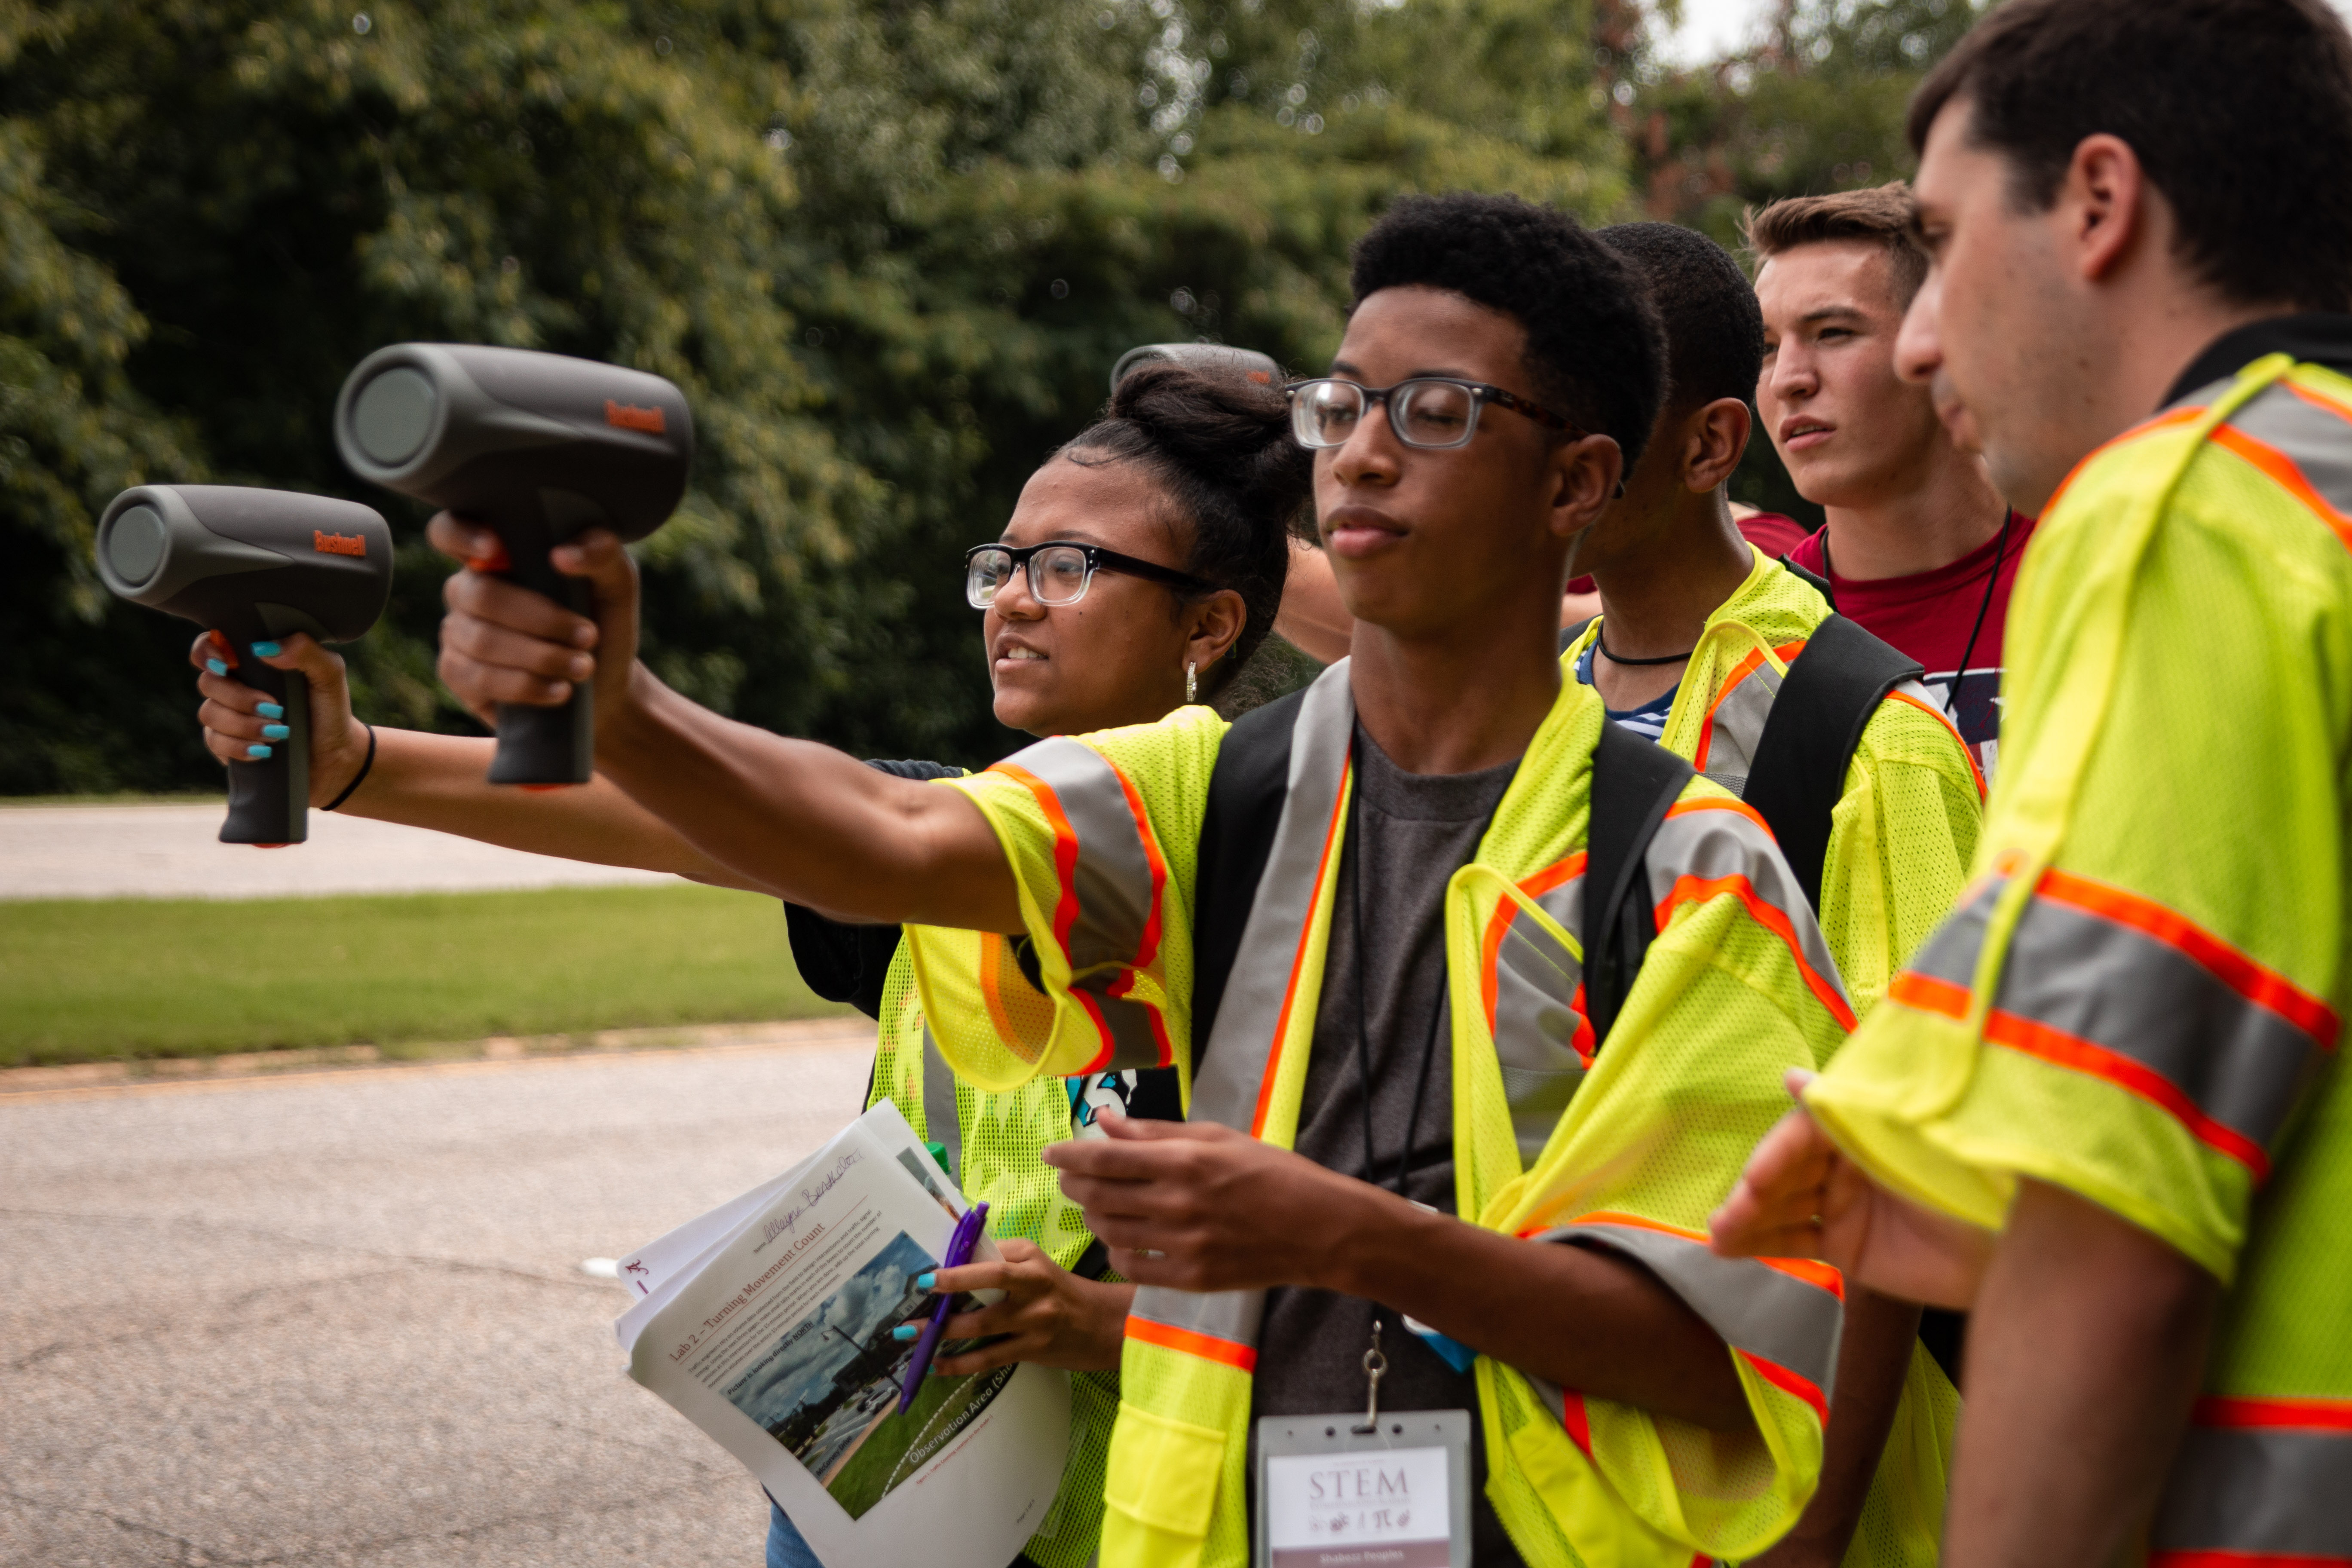 Students measure the speed of passing cars using radar guns.